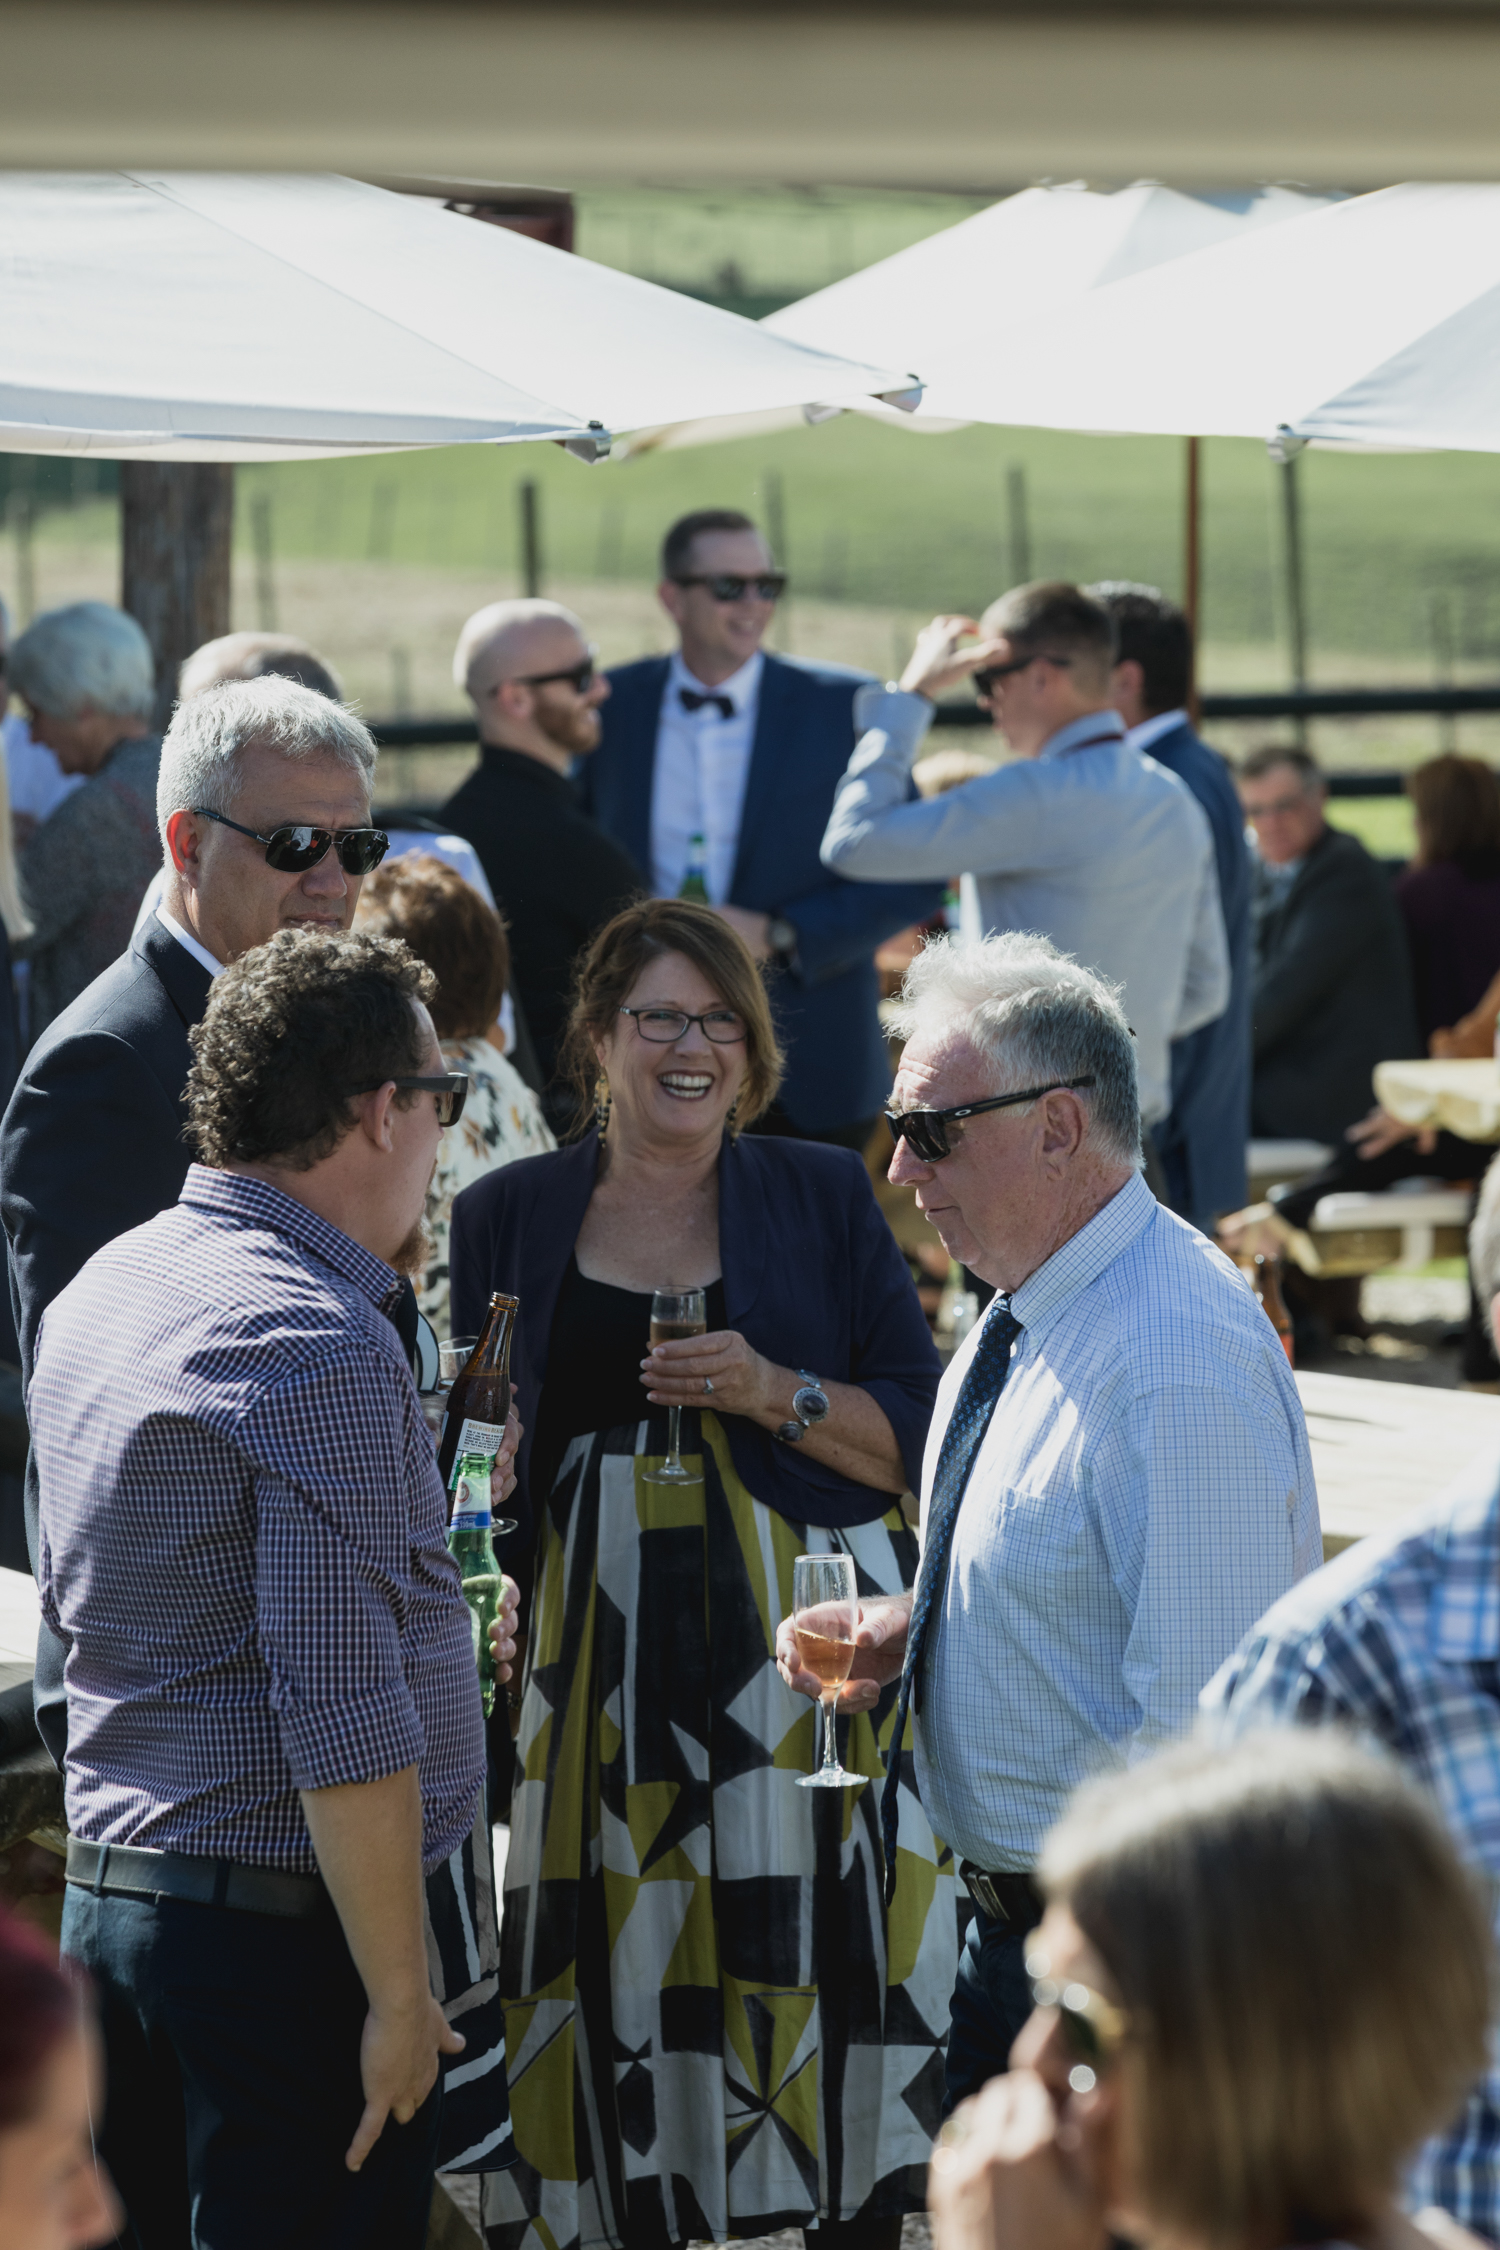 wedding-at-the-red-barn-new-zealand-wedding-photographer-guests-together.jpg